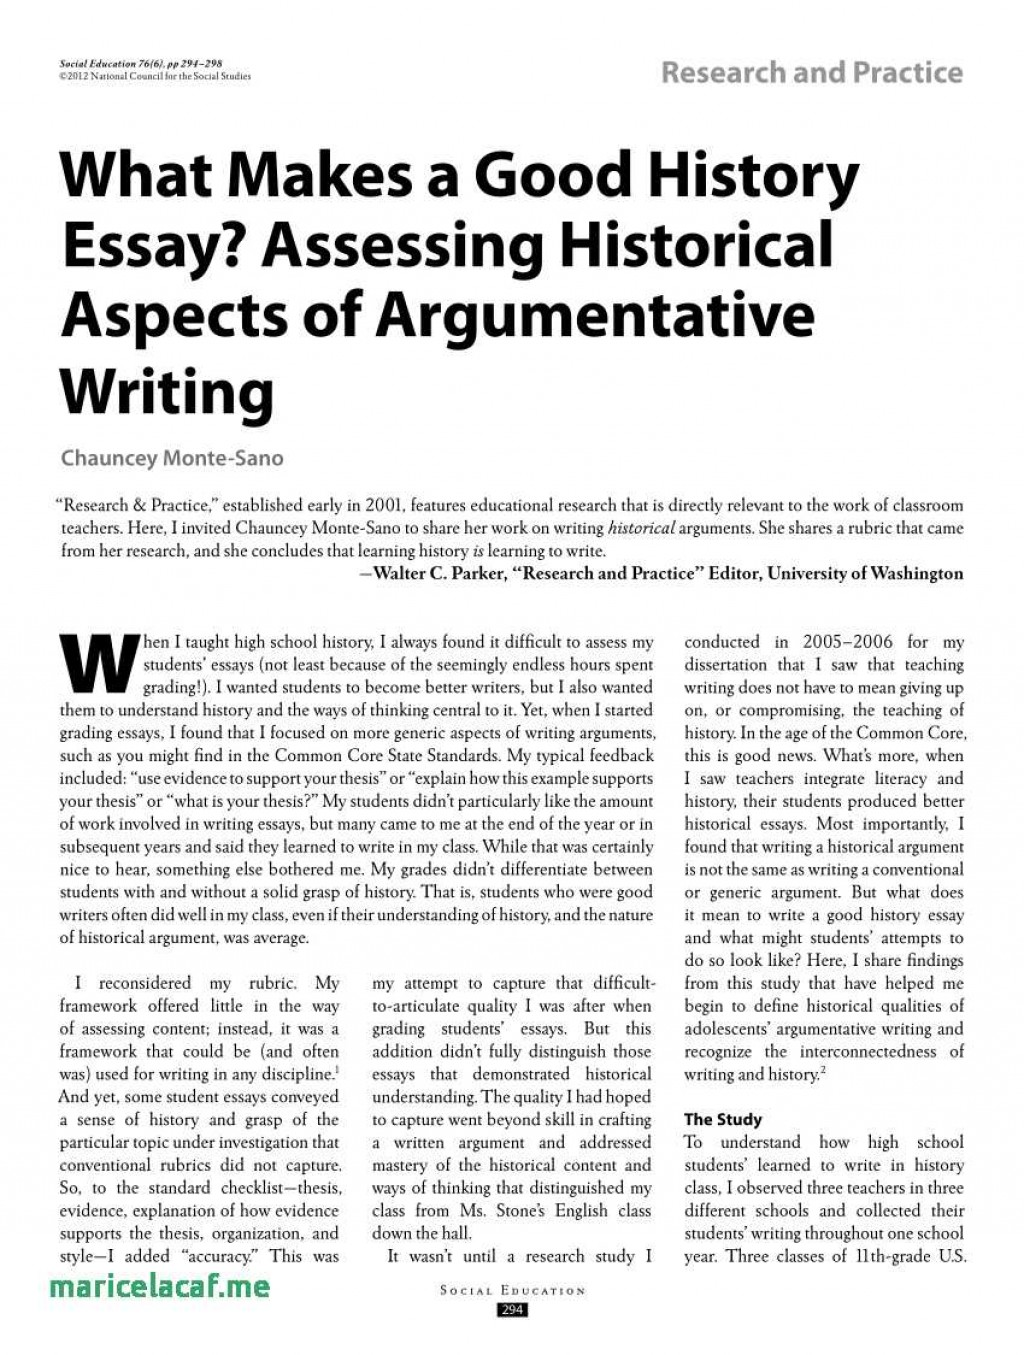 021 Research Paper Essay Maker Pdf What Makes Good History Assessing Historical Aspects Best Of Rubric For Social Studies Topics20 Topics In The Outstanding Philippines Large